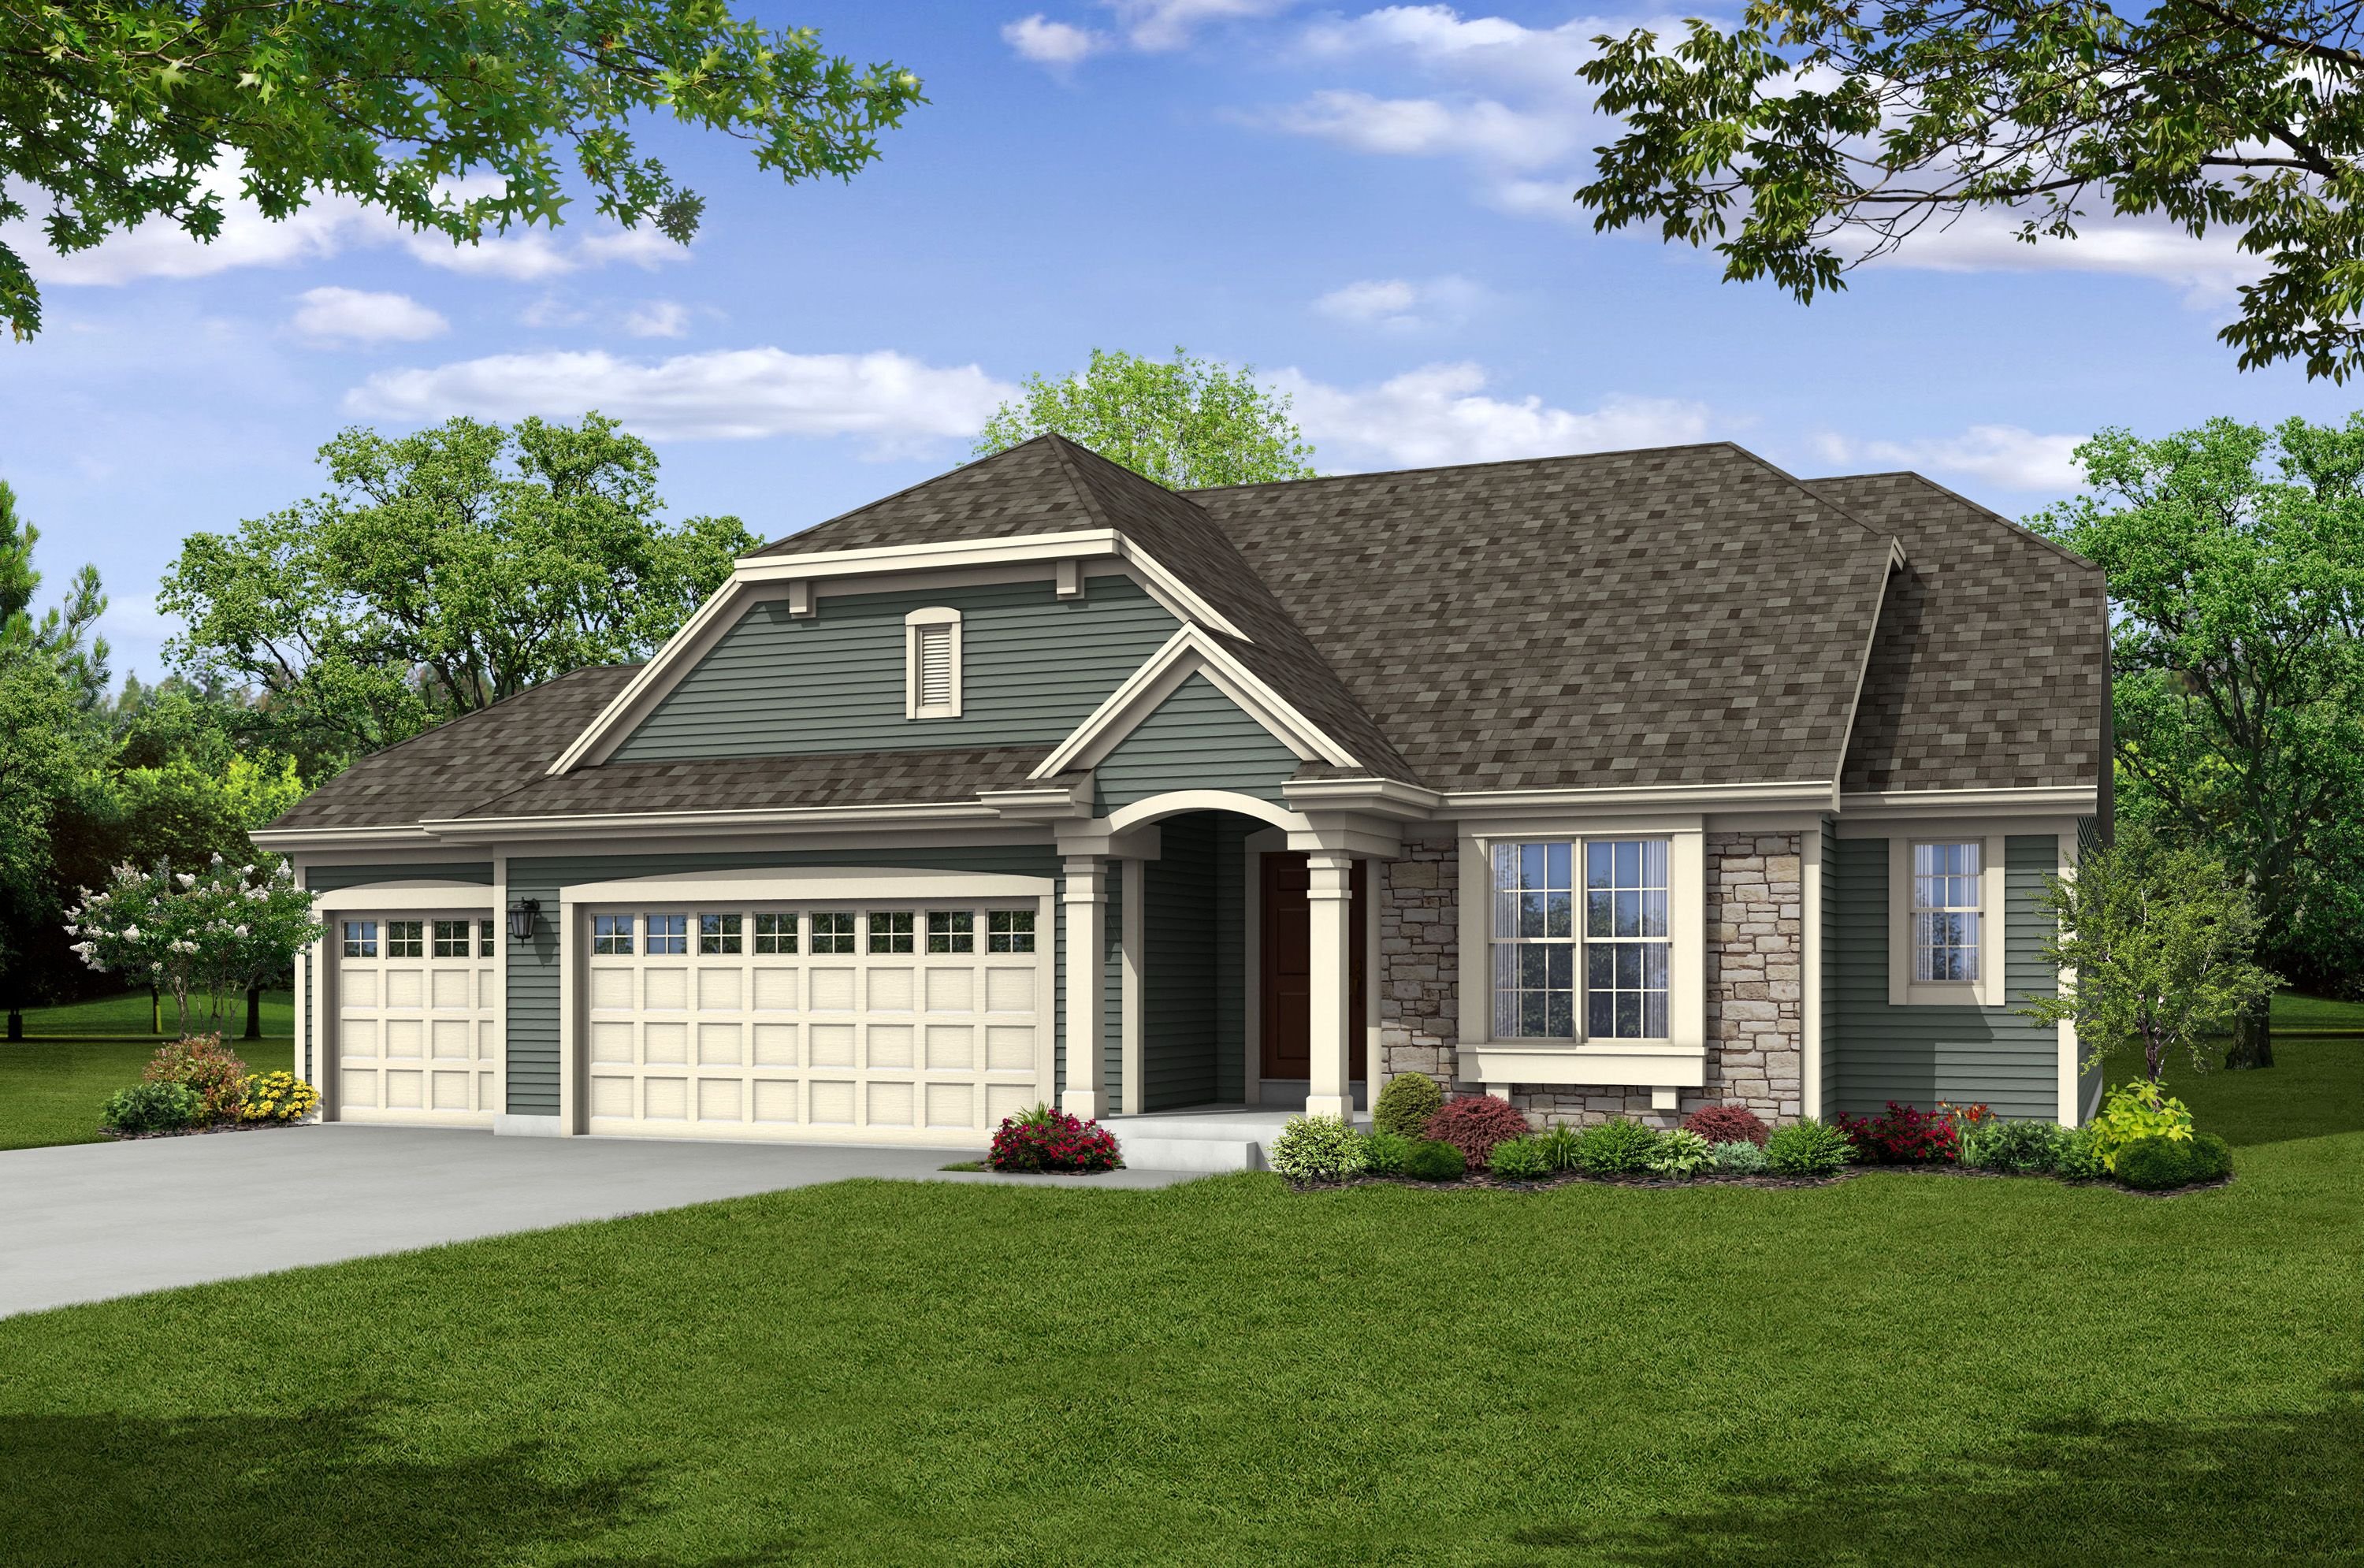 Single Family for Sale at The Lauren, Plan 1640 1807 Cloverview Street West Bend, Wisconsin 53095 United States